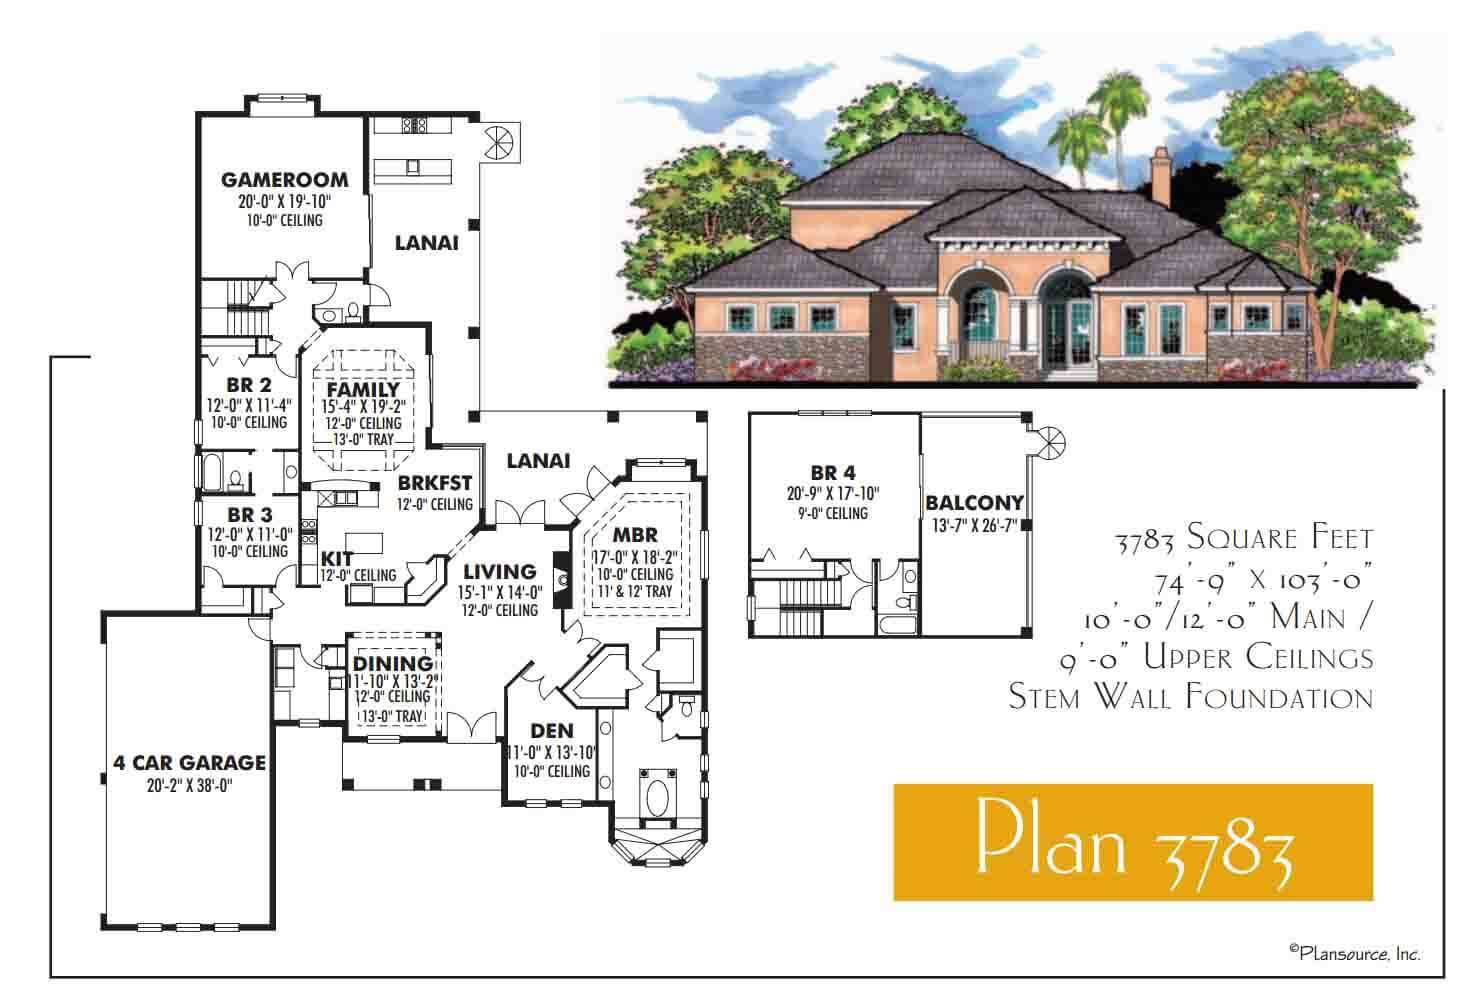 Floor Plans,3,501 SQ FT TO 4,000 SQ FT,1105